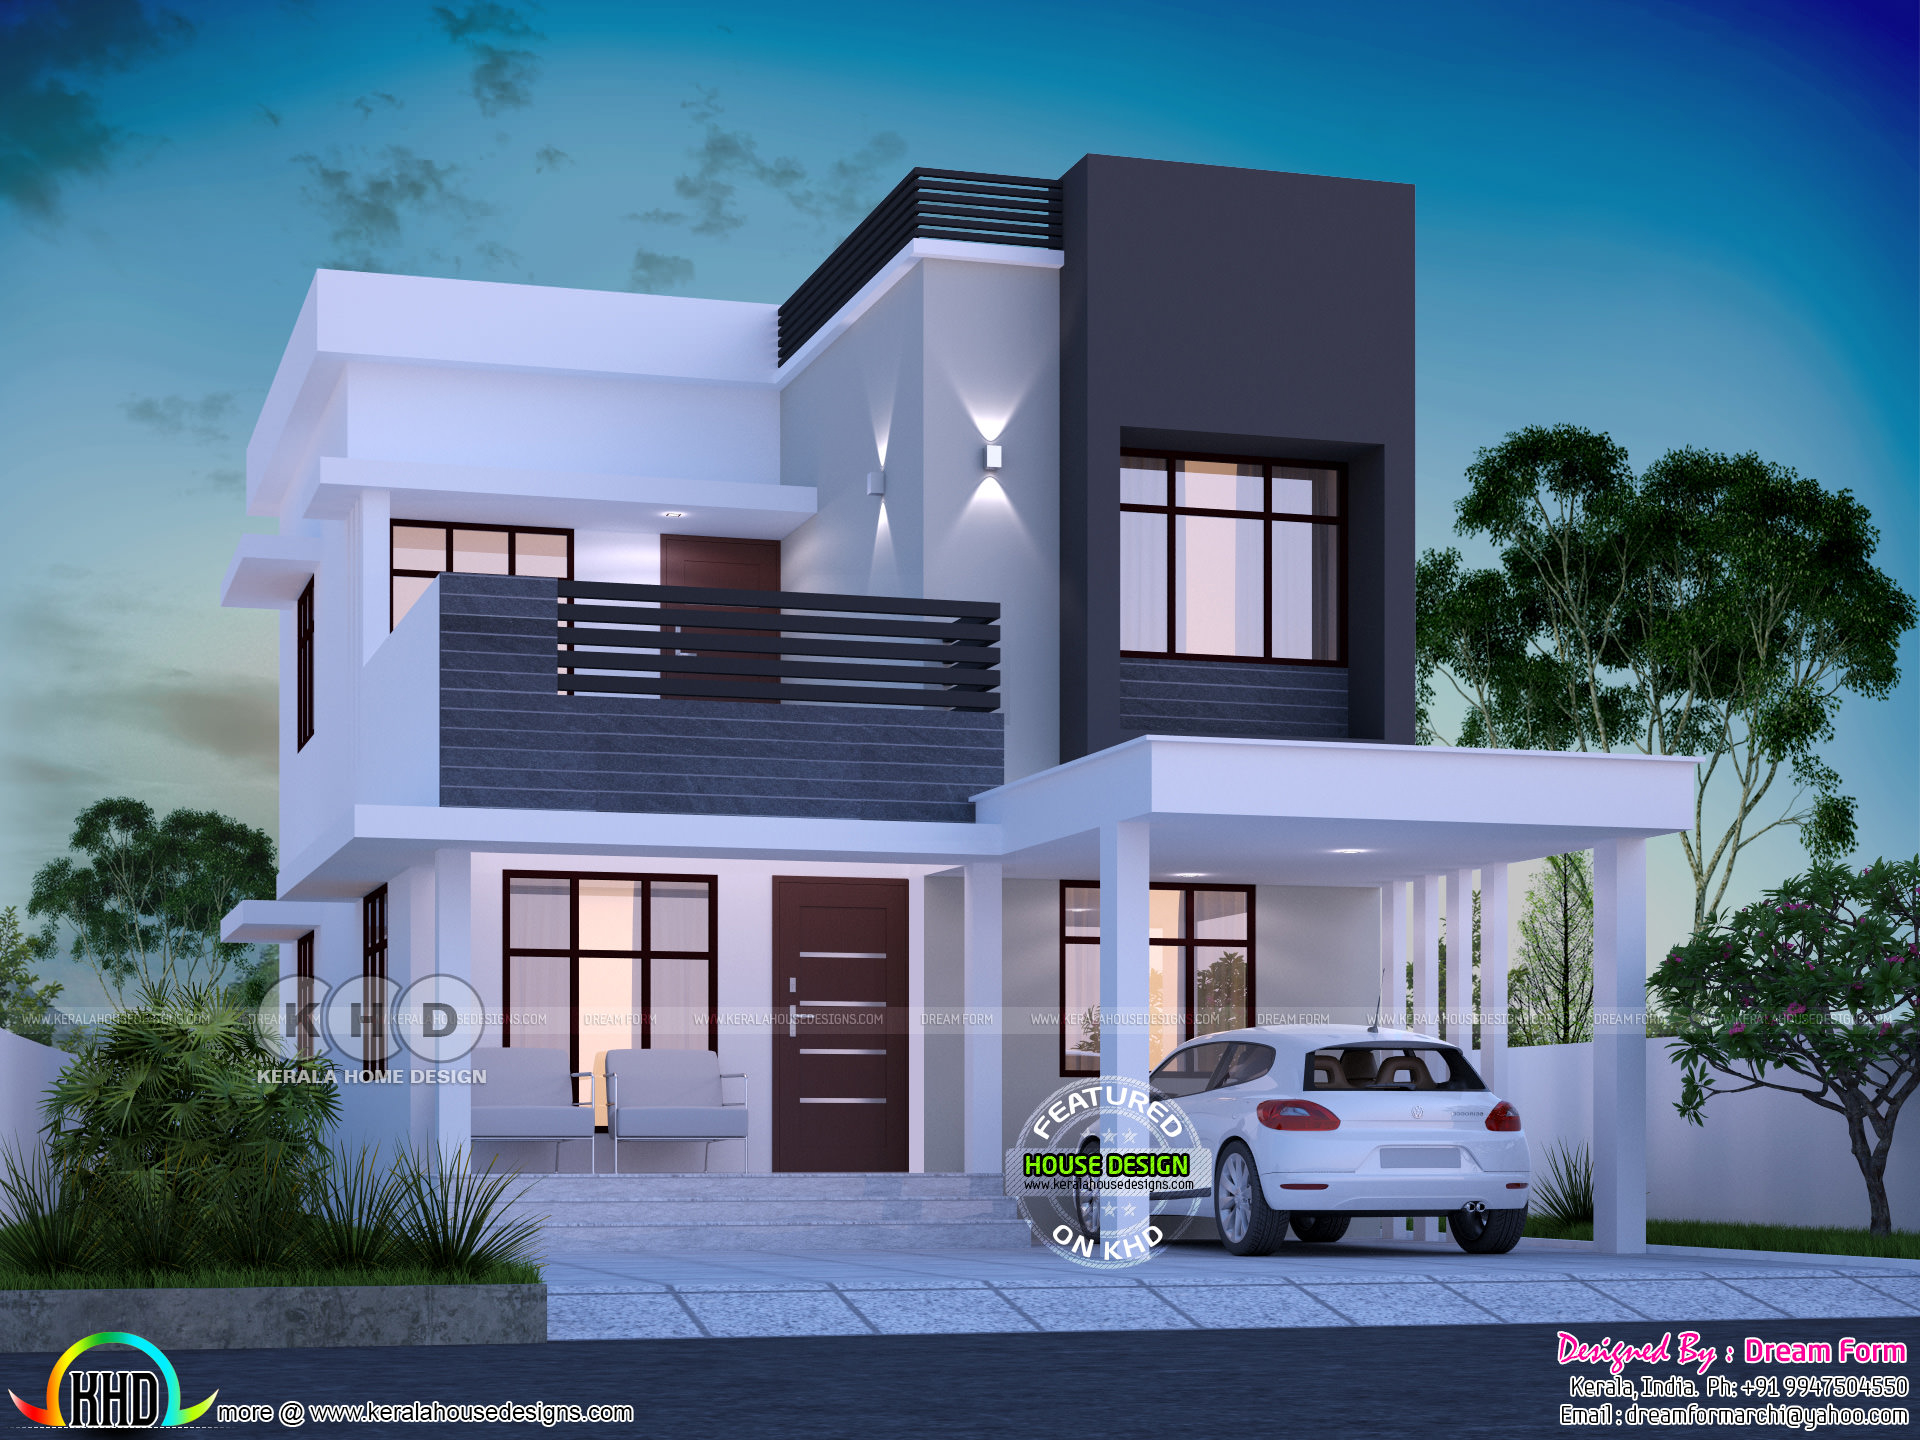 1645 Square Feet 3 Bedroom Modern House Plan Kerala Home with 11 Smart Concepts of How to Upgrade Modern 3 Bedroom House Plans